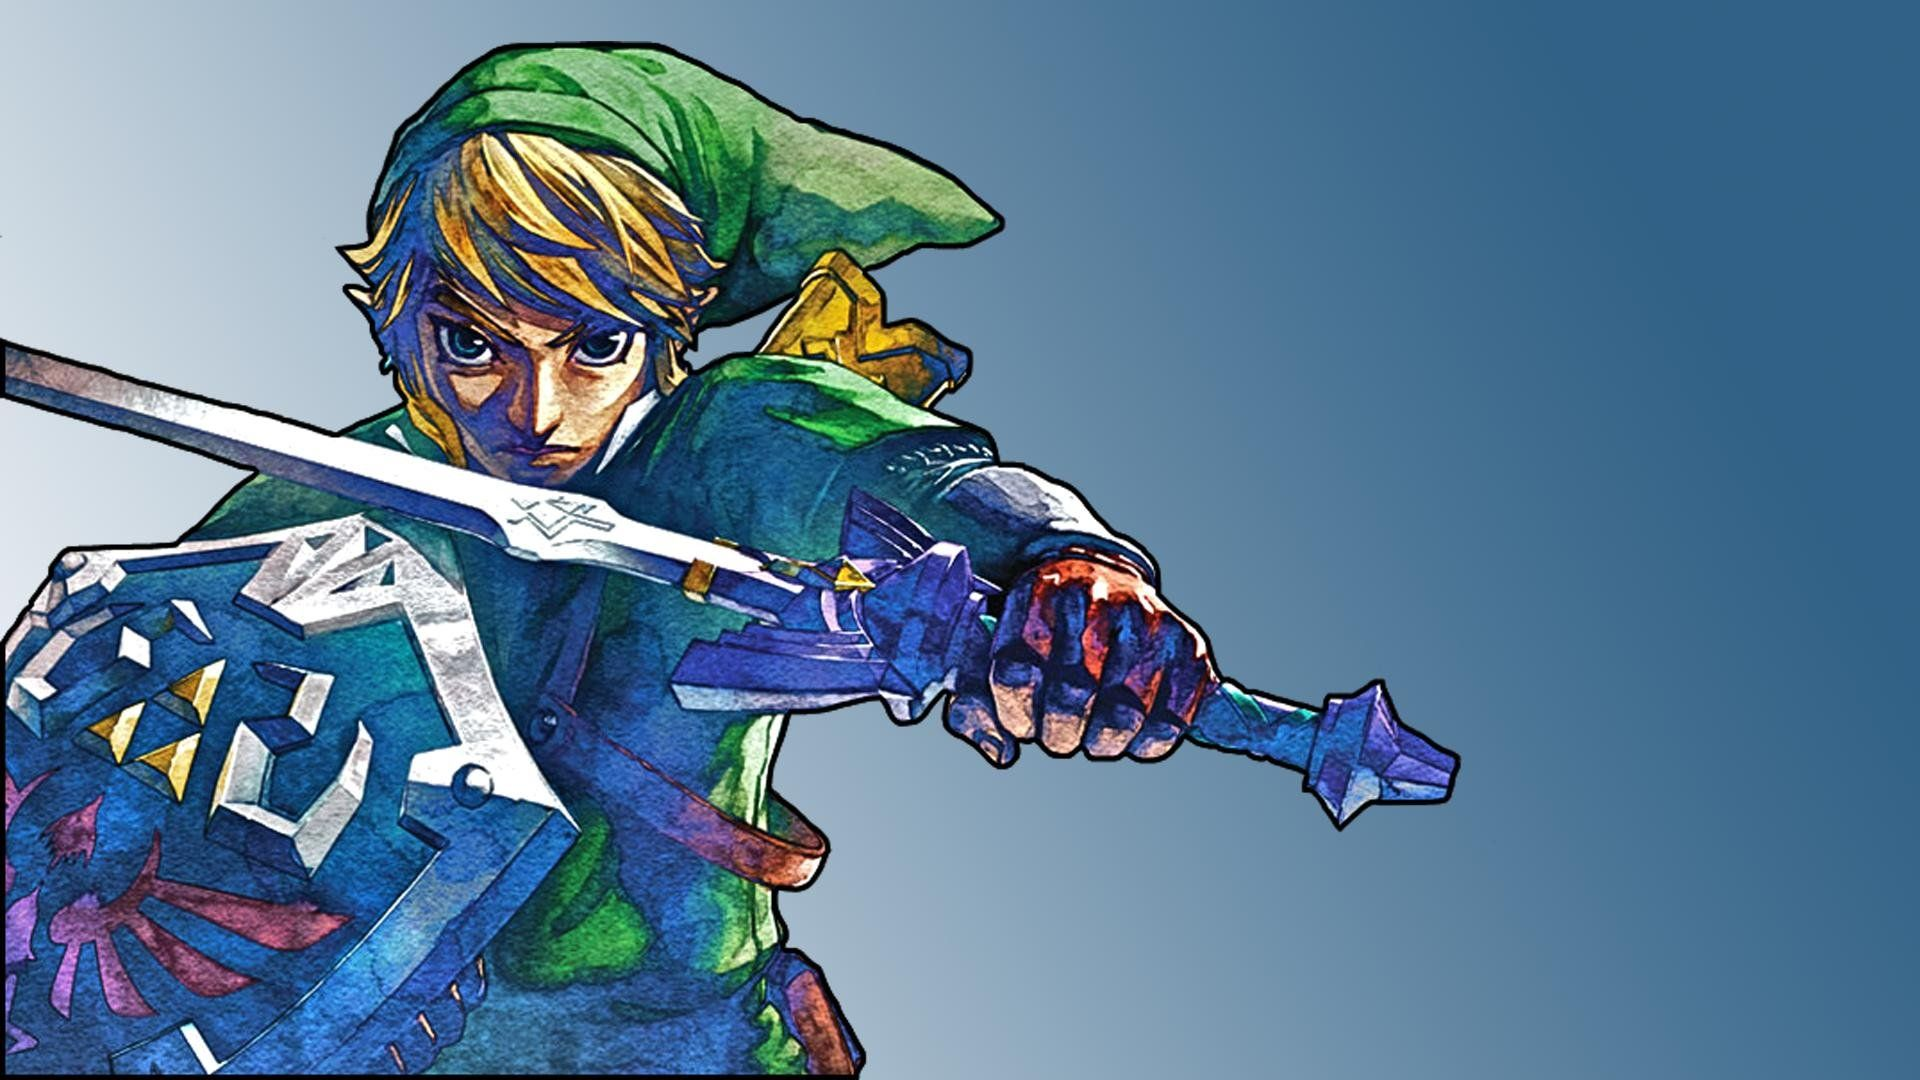 legend of zelda wallpapers part album on imgur | the legend of zelda